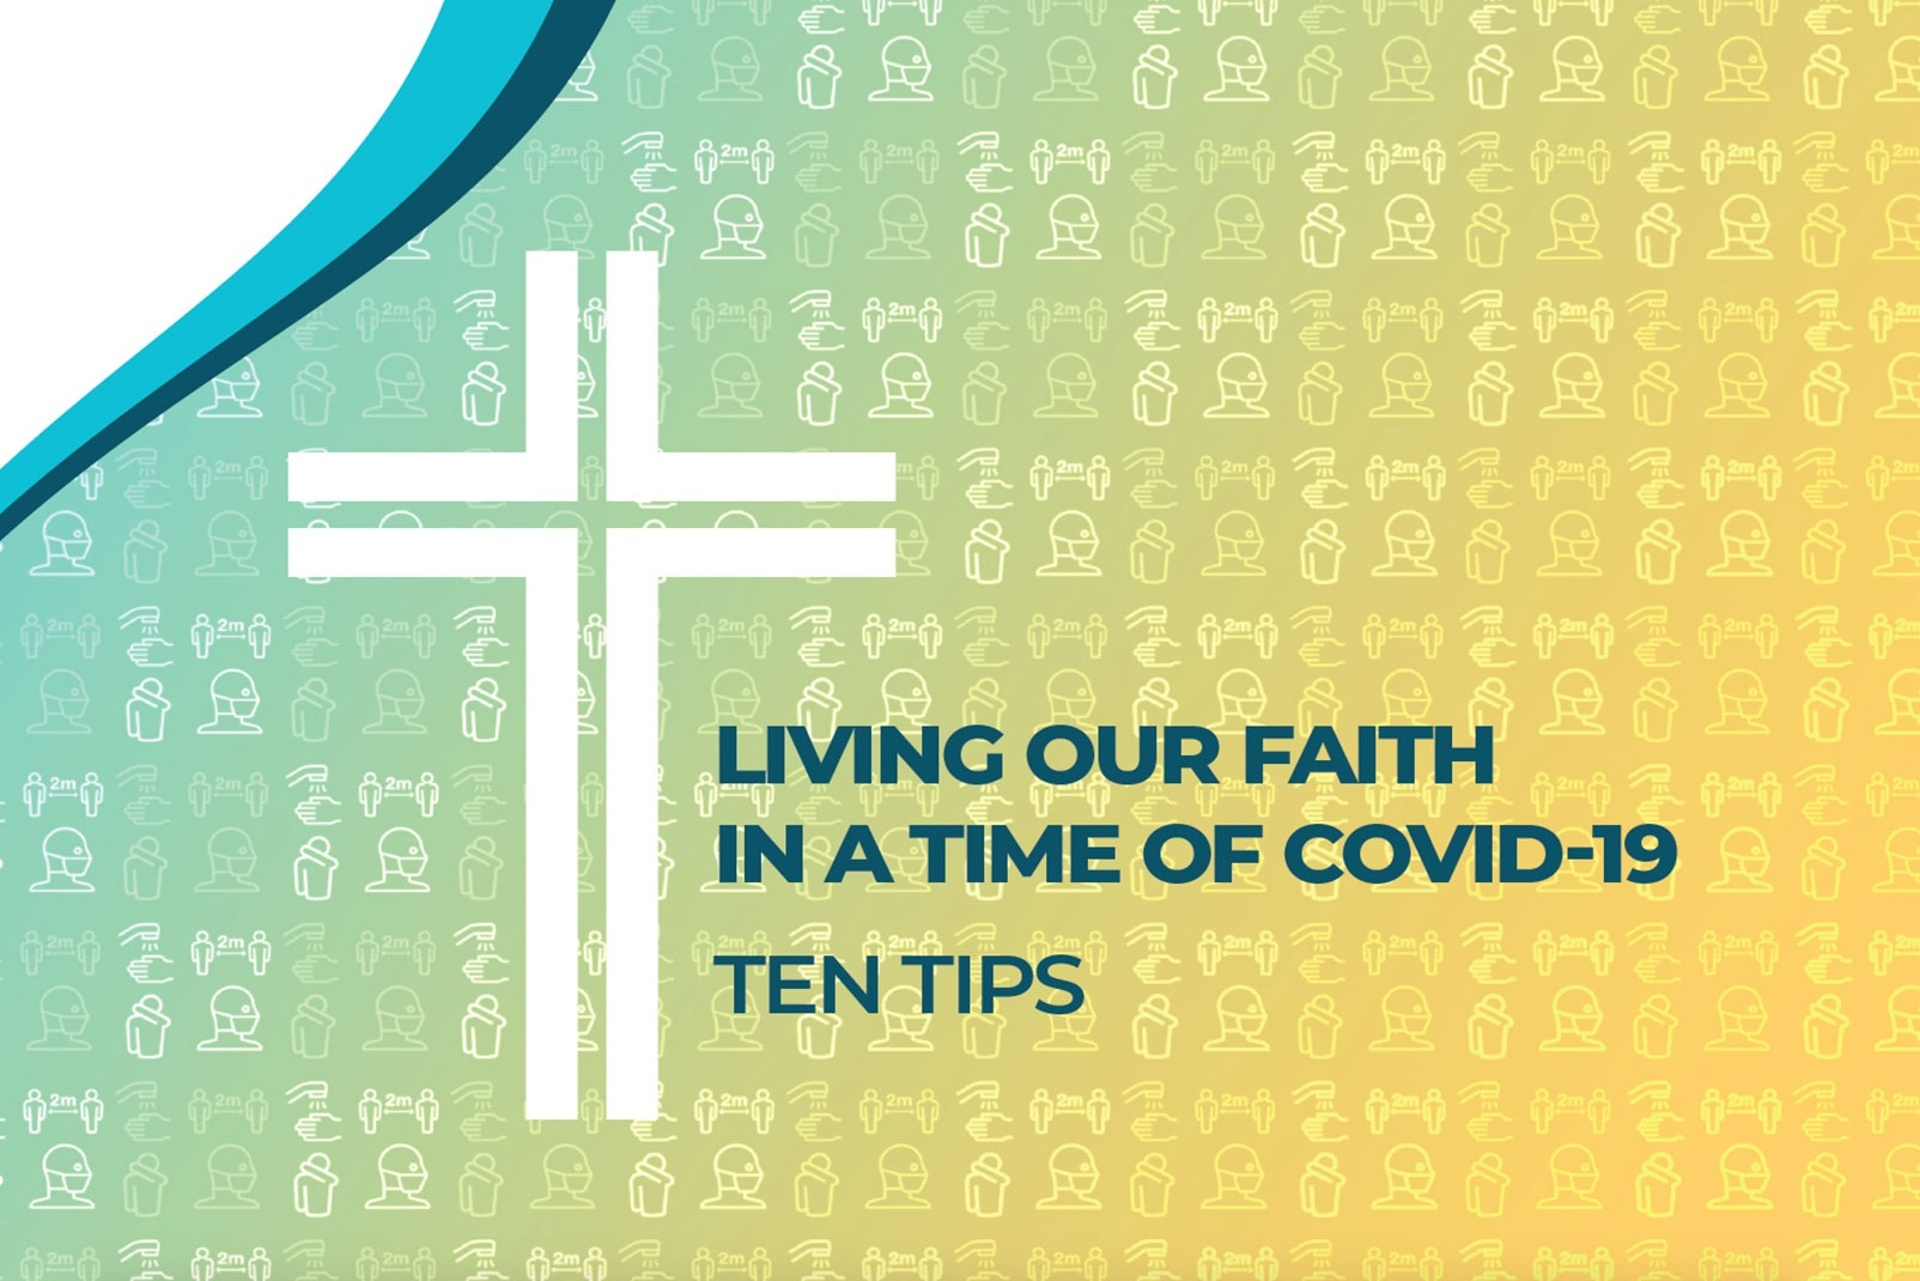 10 Tips for Living our Faith in COVID